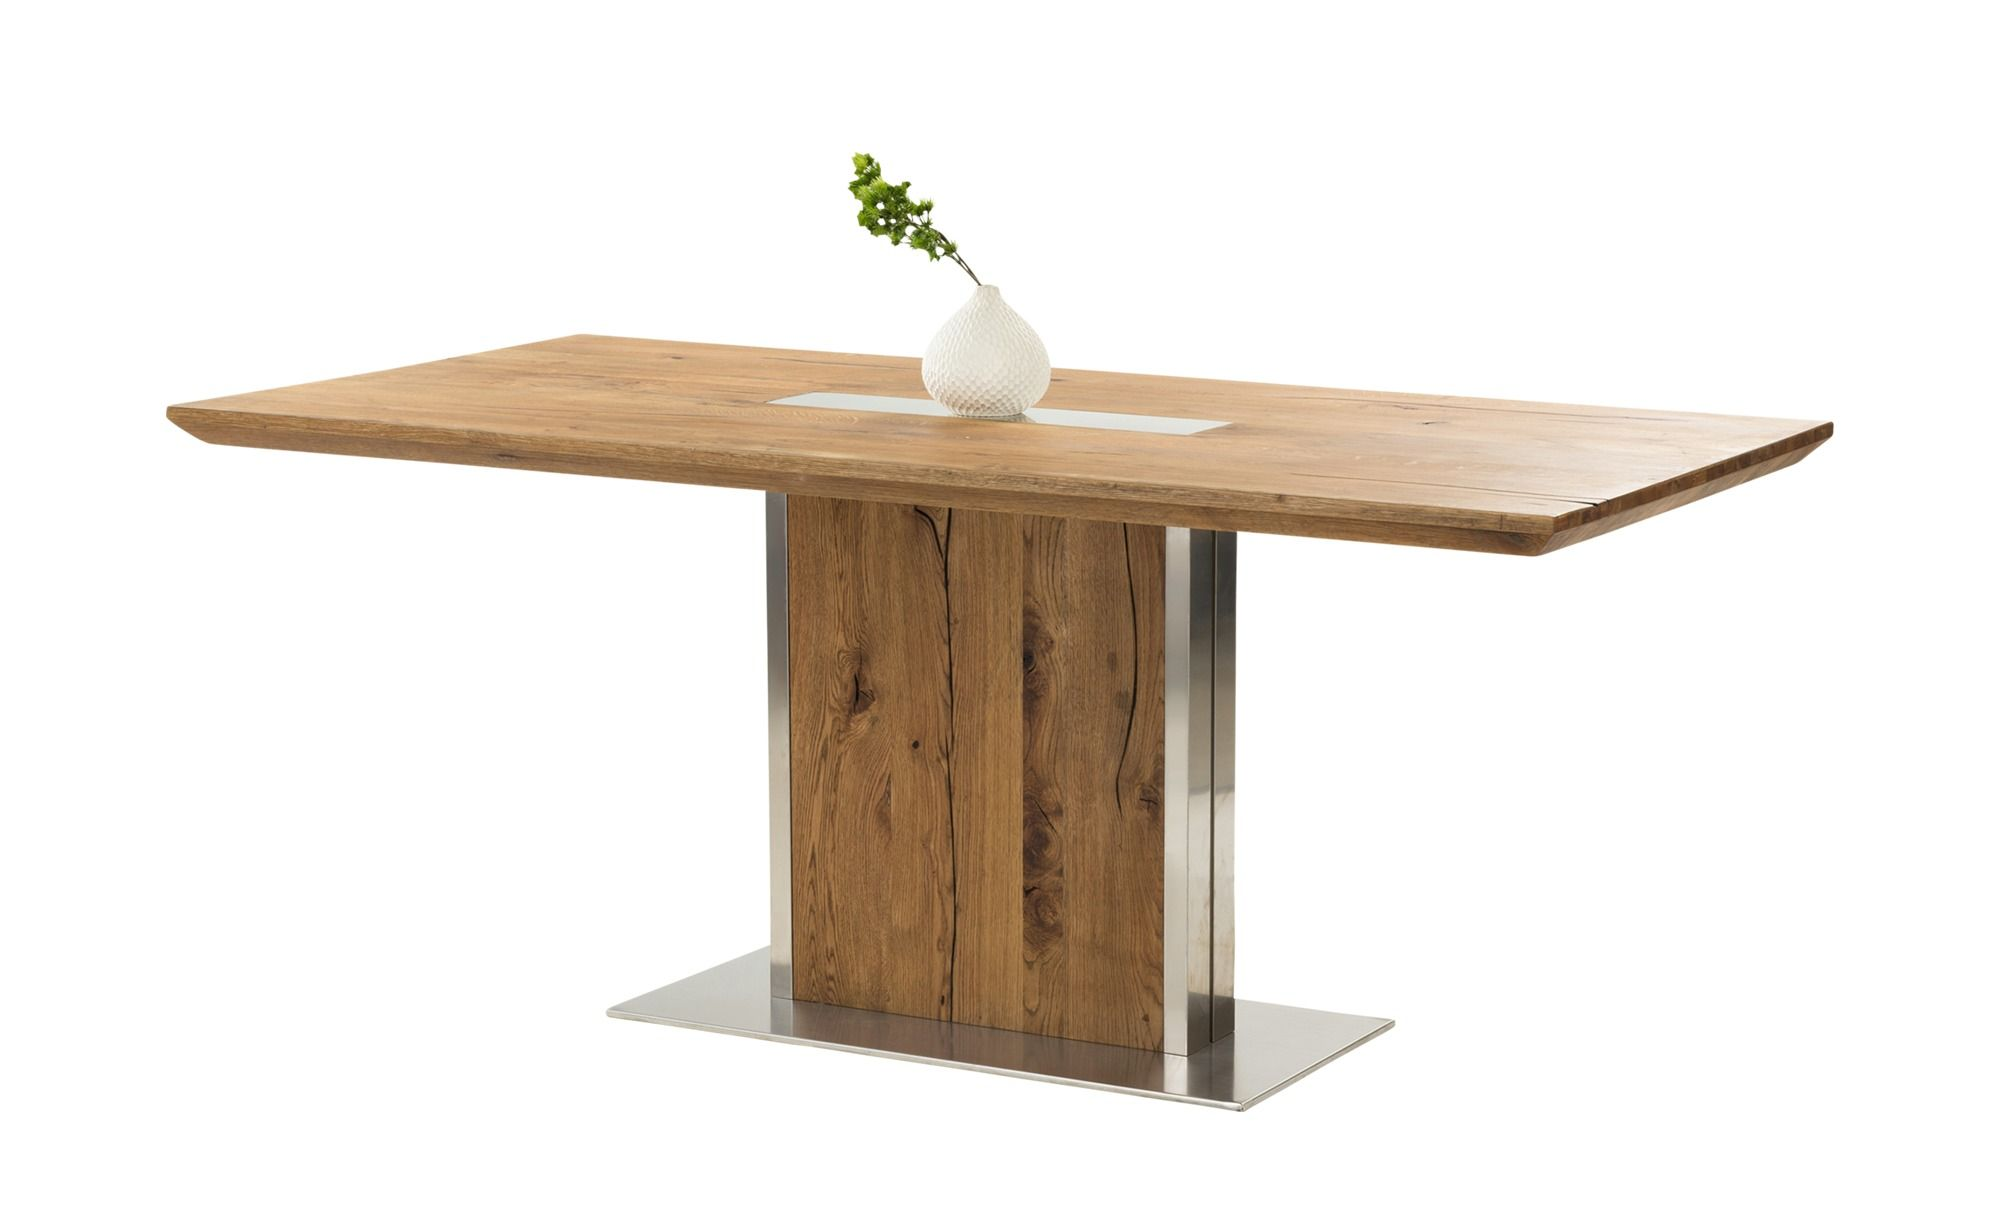 Esstisch Eiche Edelstahl Gilberto Mobel Hoffner Oak Dining Table Dining Table Table